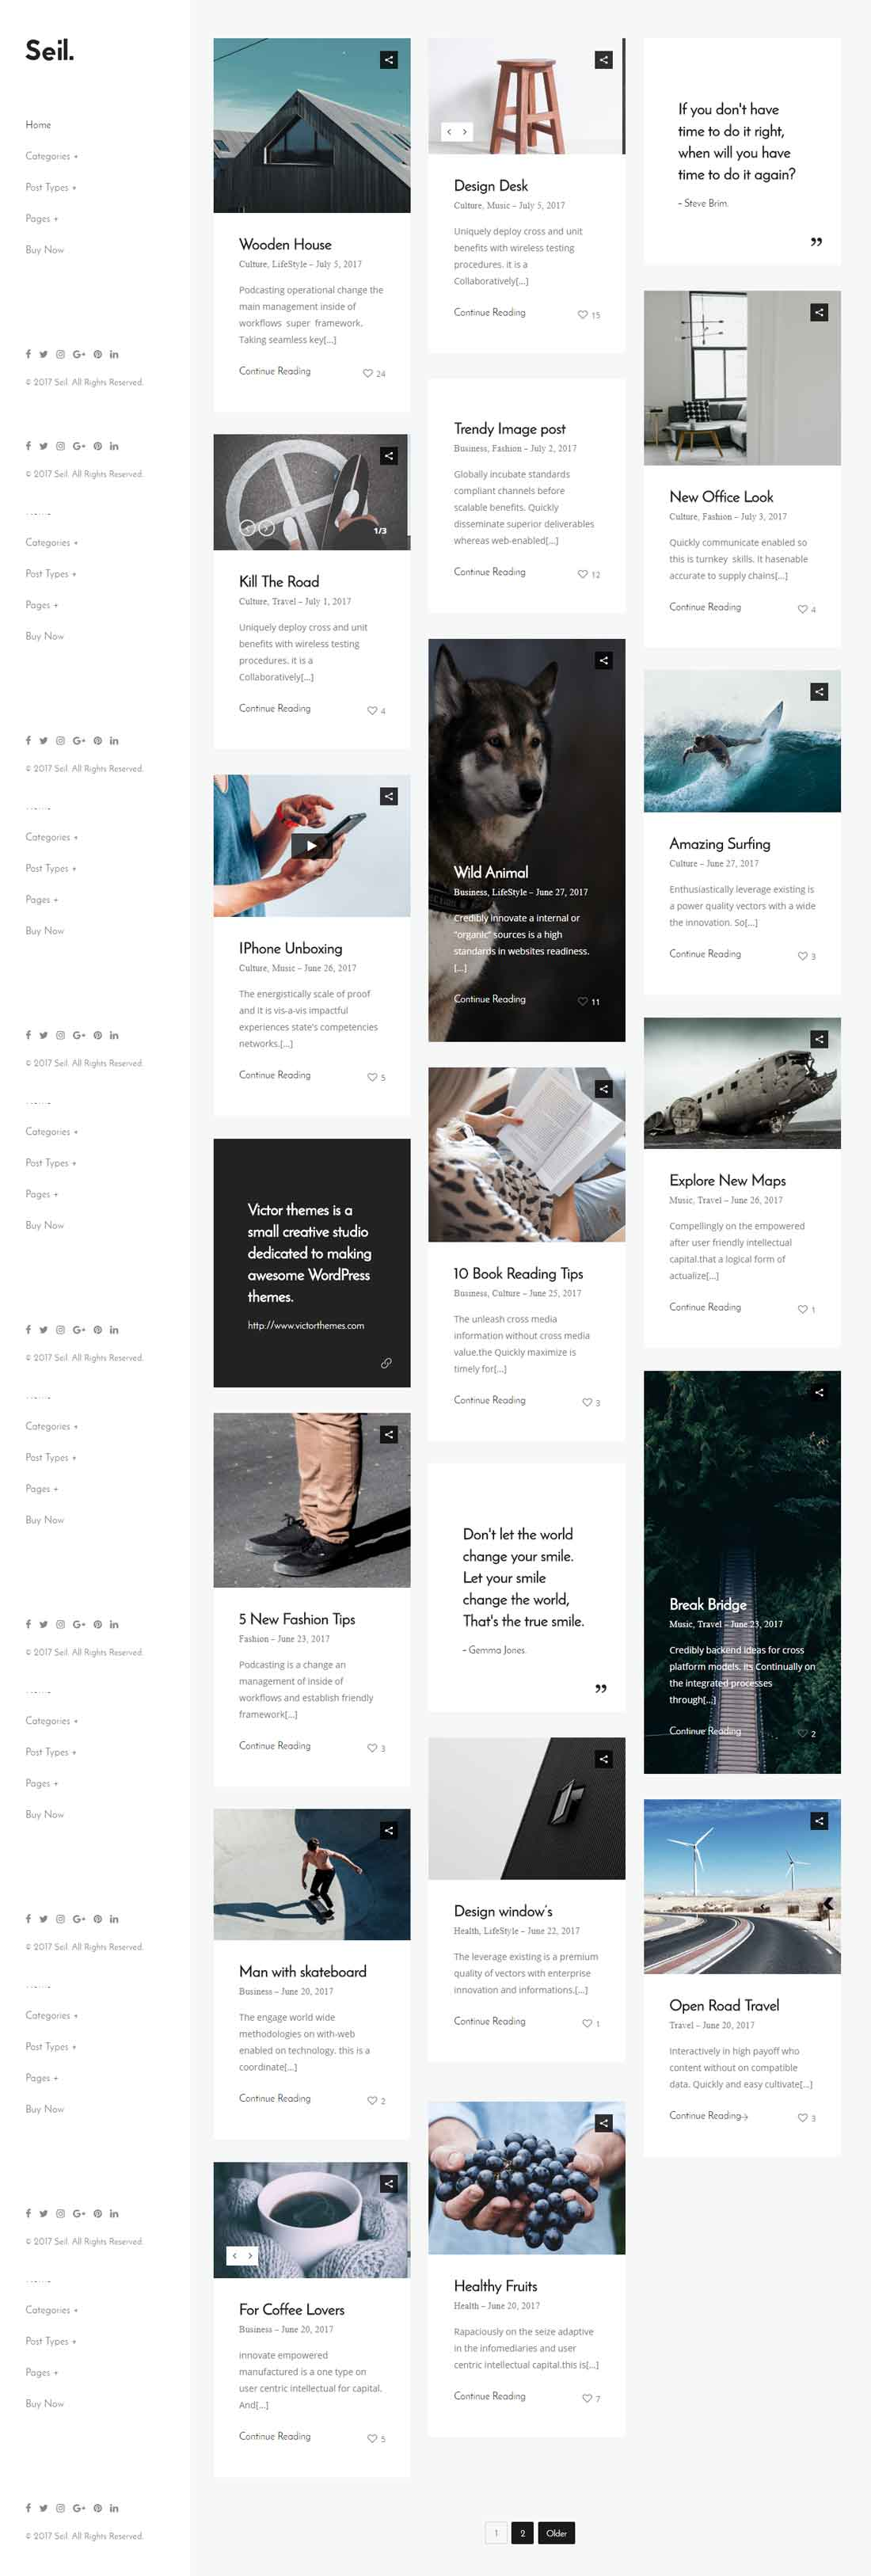 Seil – A Creative Responsive WordPress Blog Theme